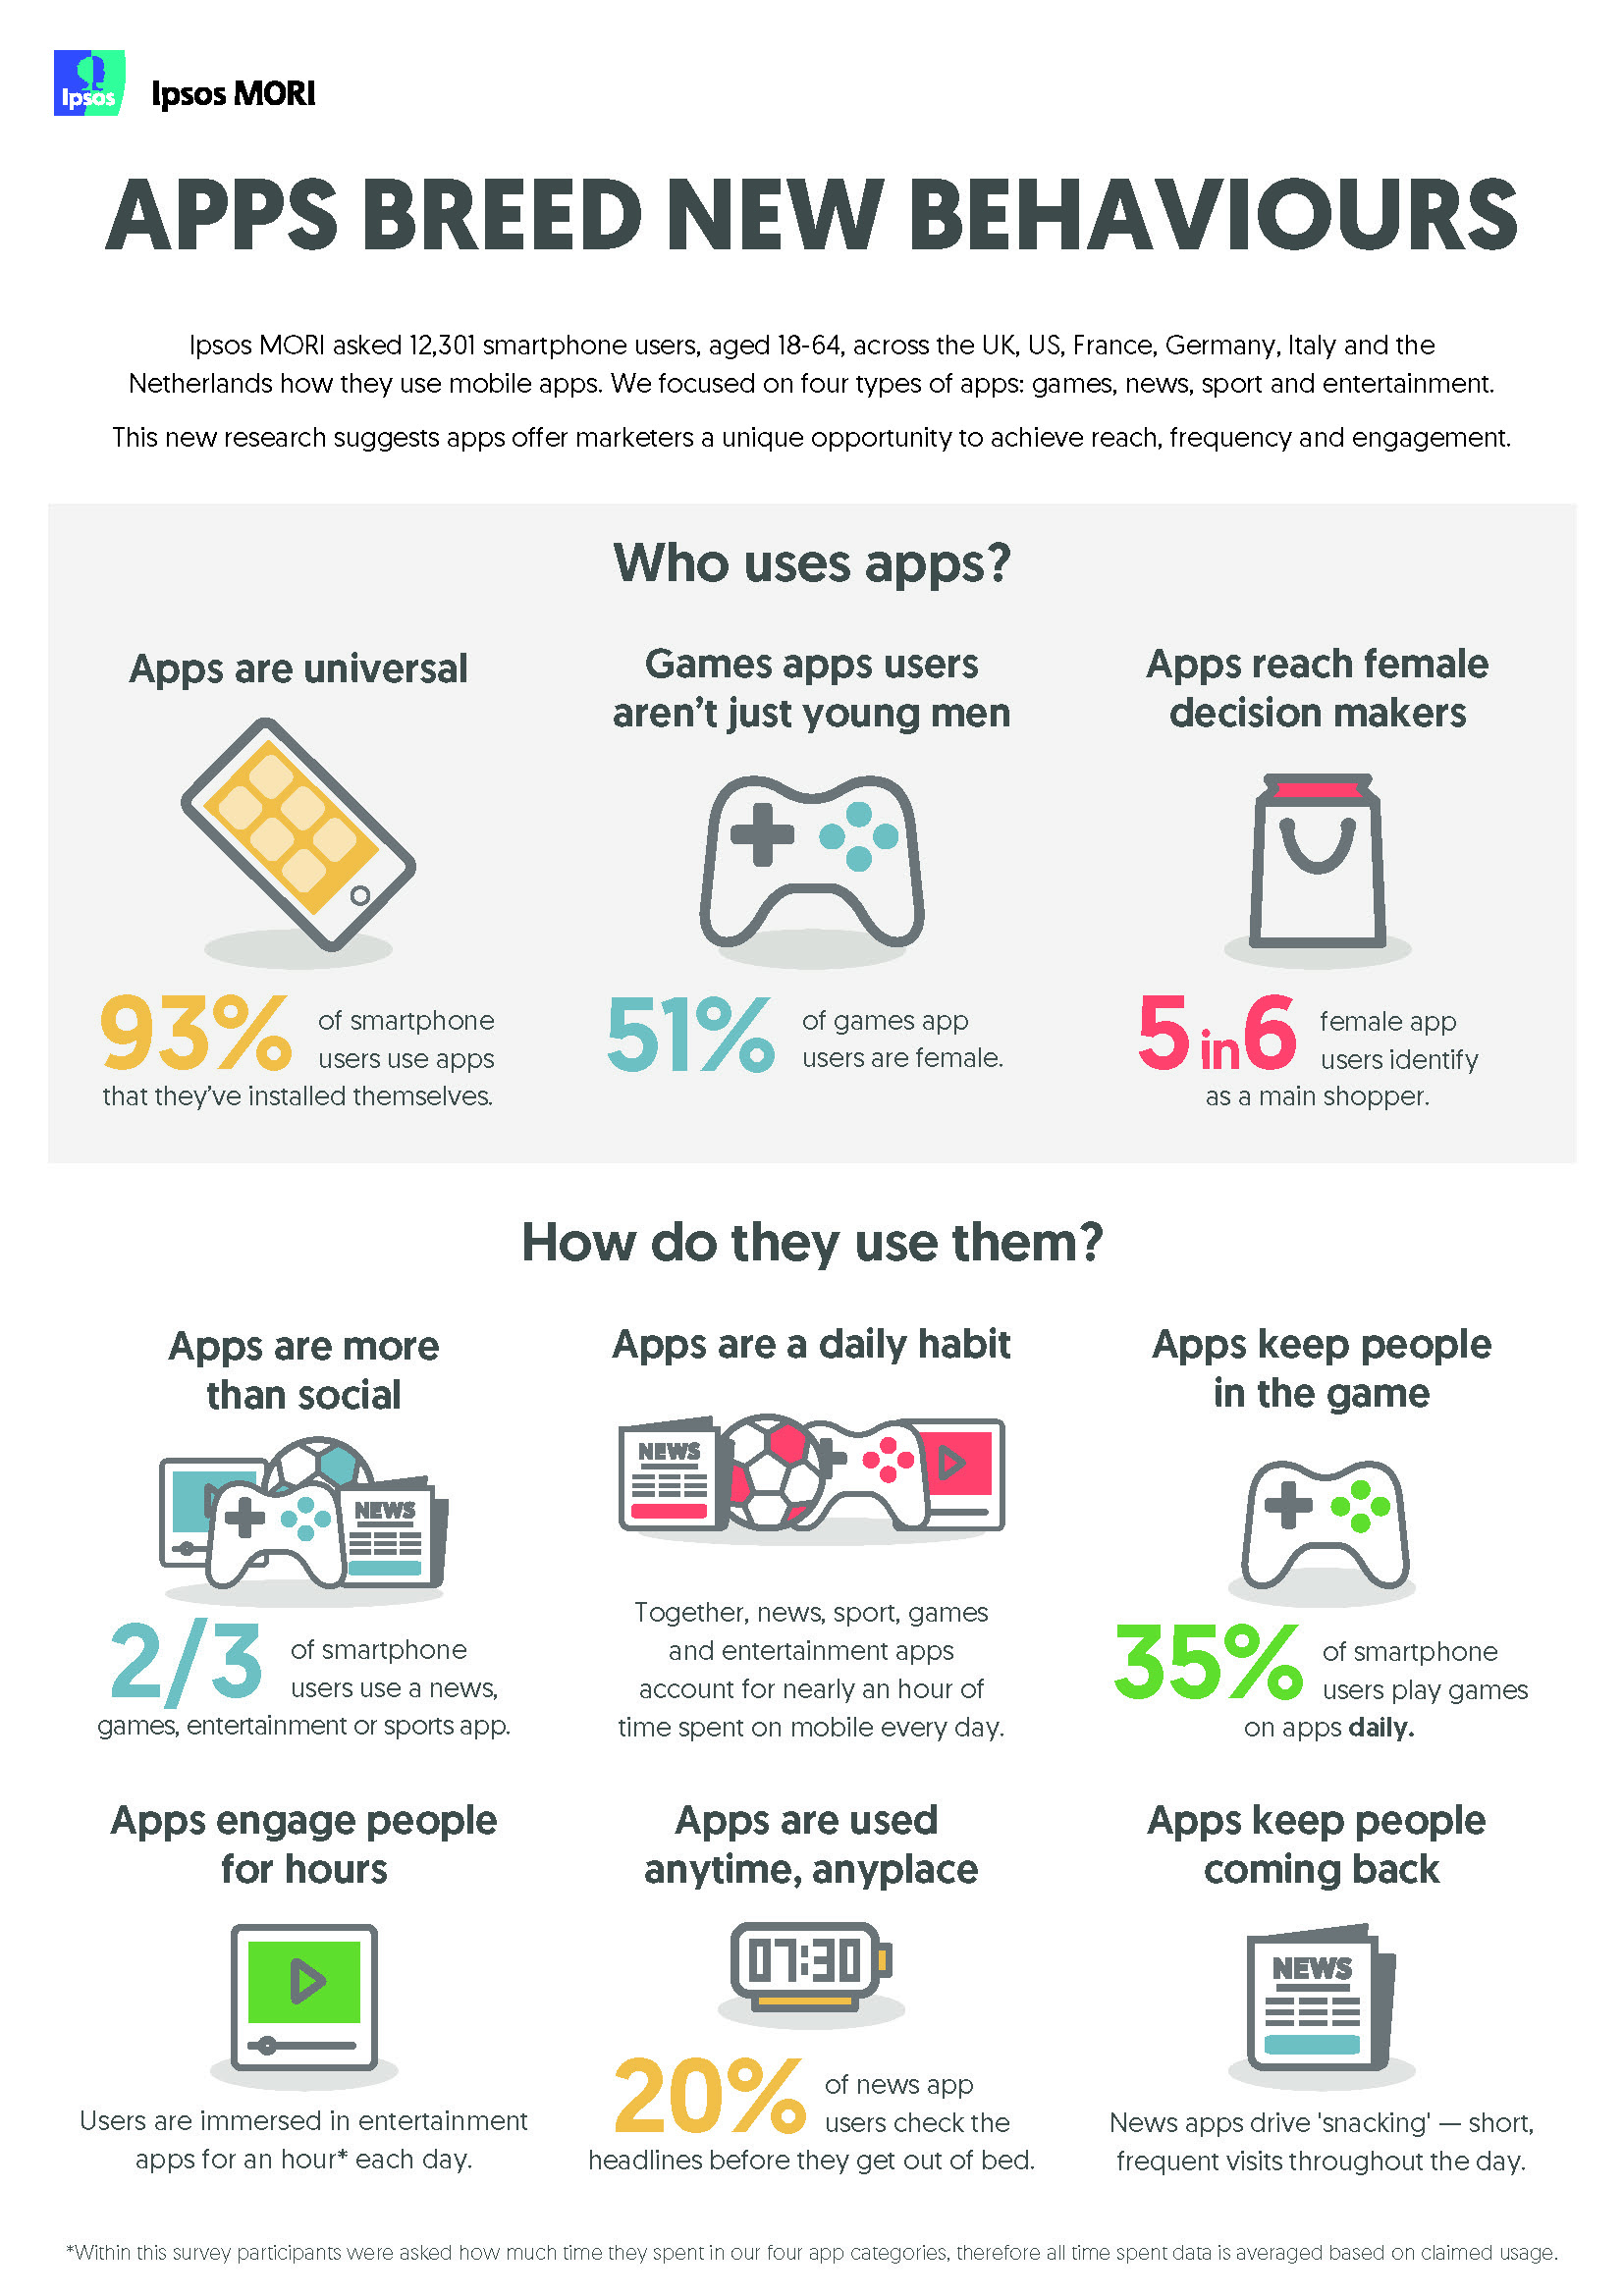 As apps become mainstream, what behaviours do they encourage